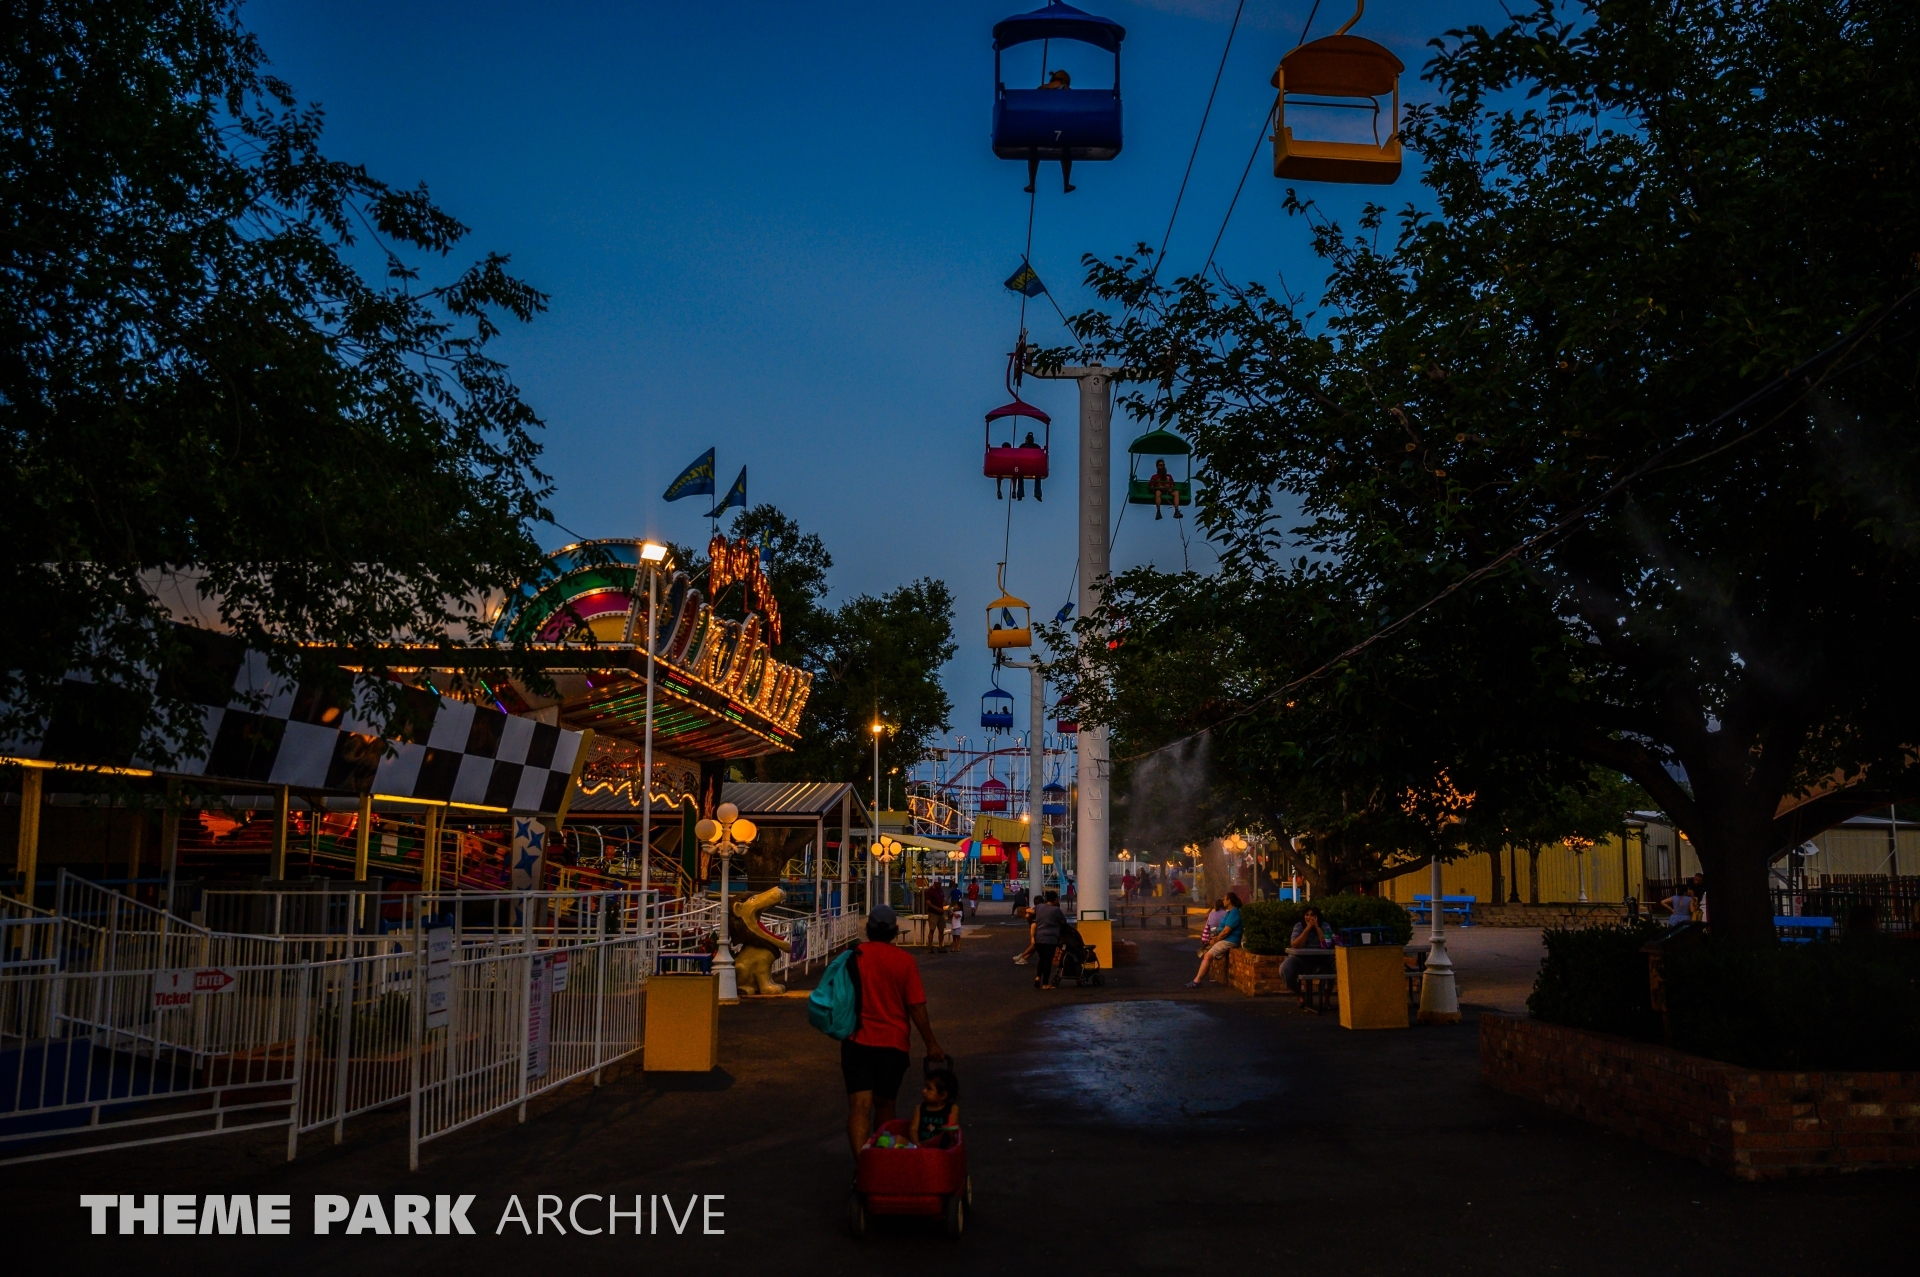 Sky Ride at Joyland Amusement Park